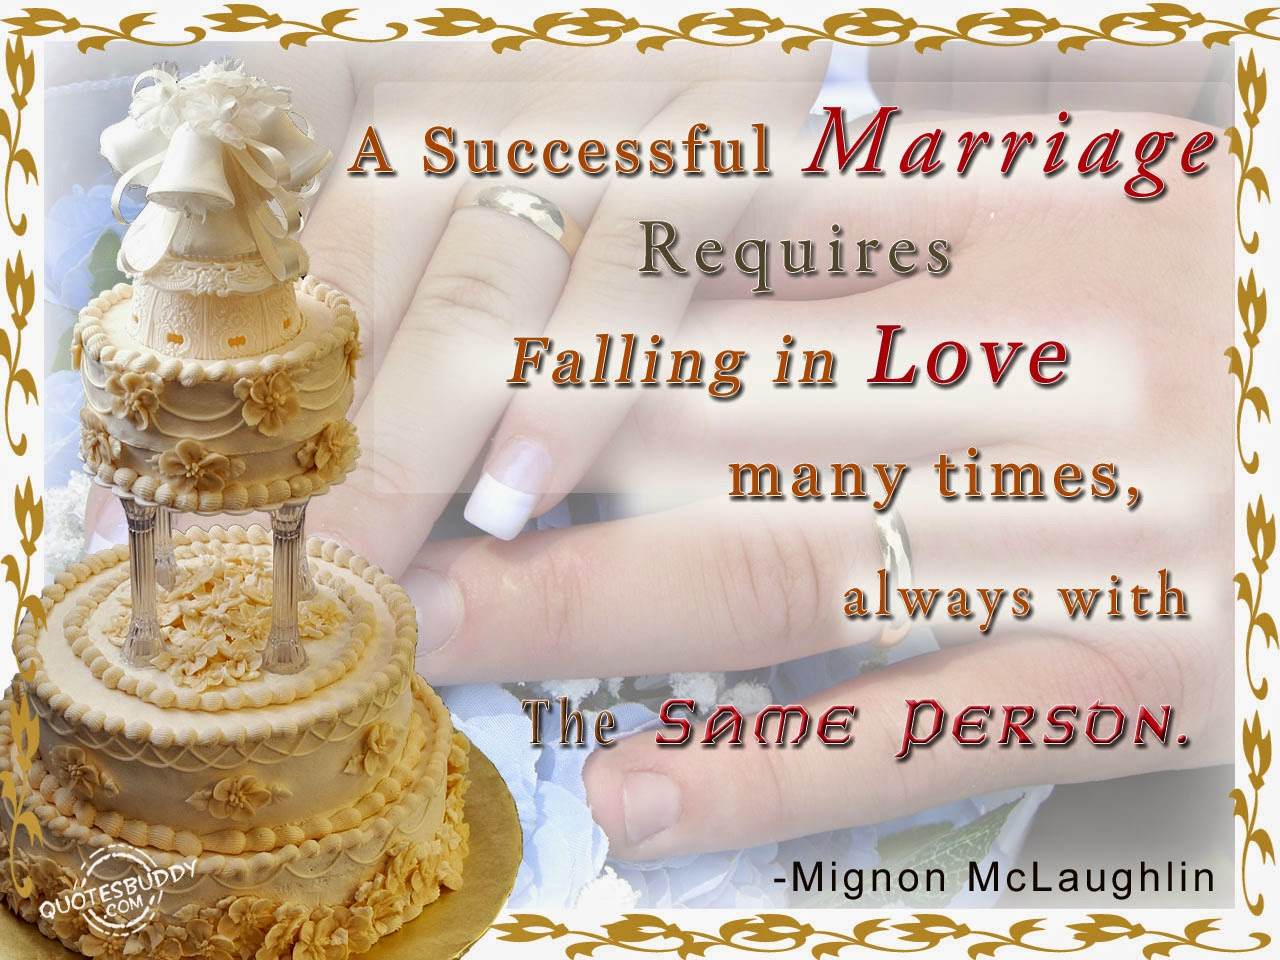 Marriage Quotes - Motivational Pictures